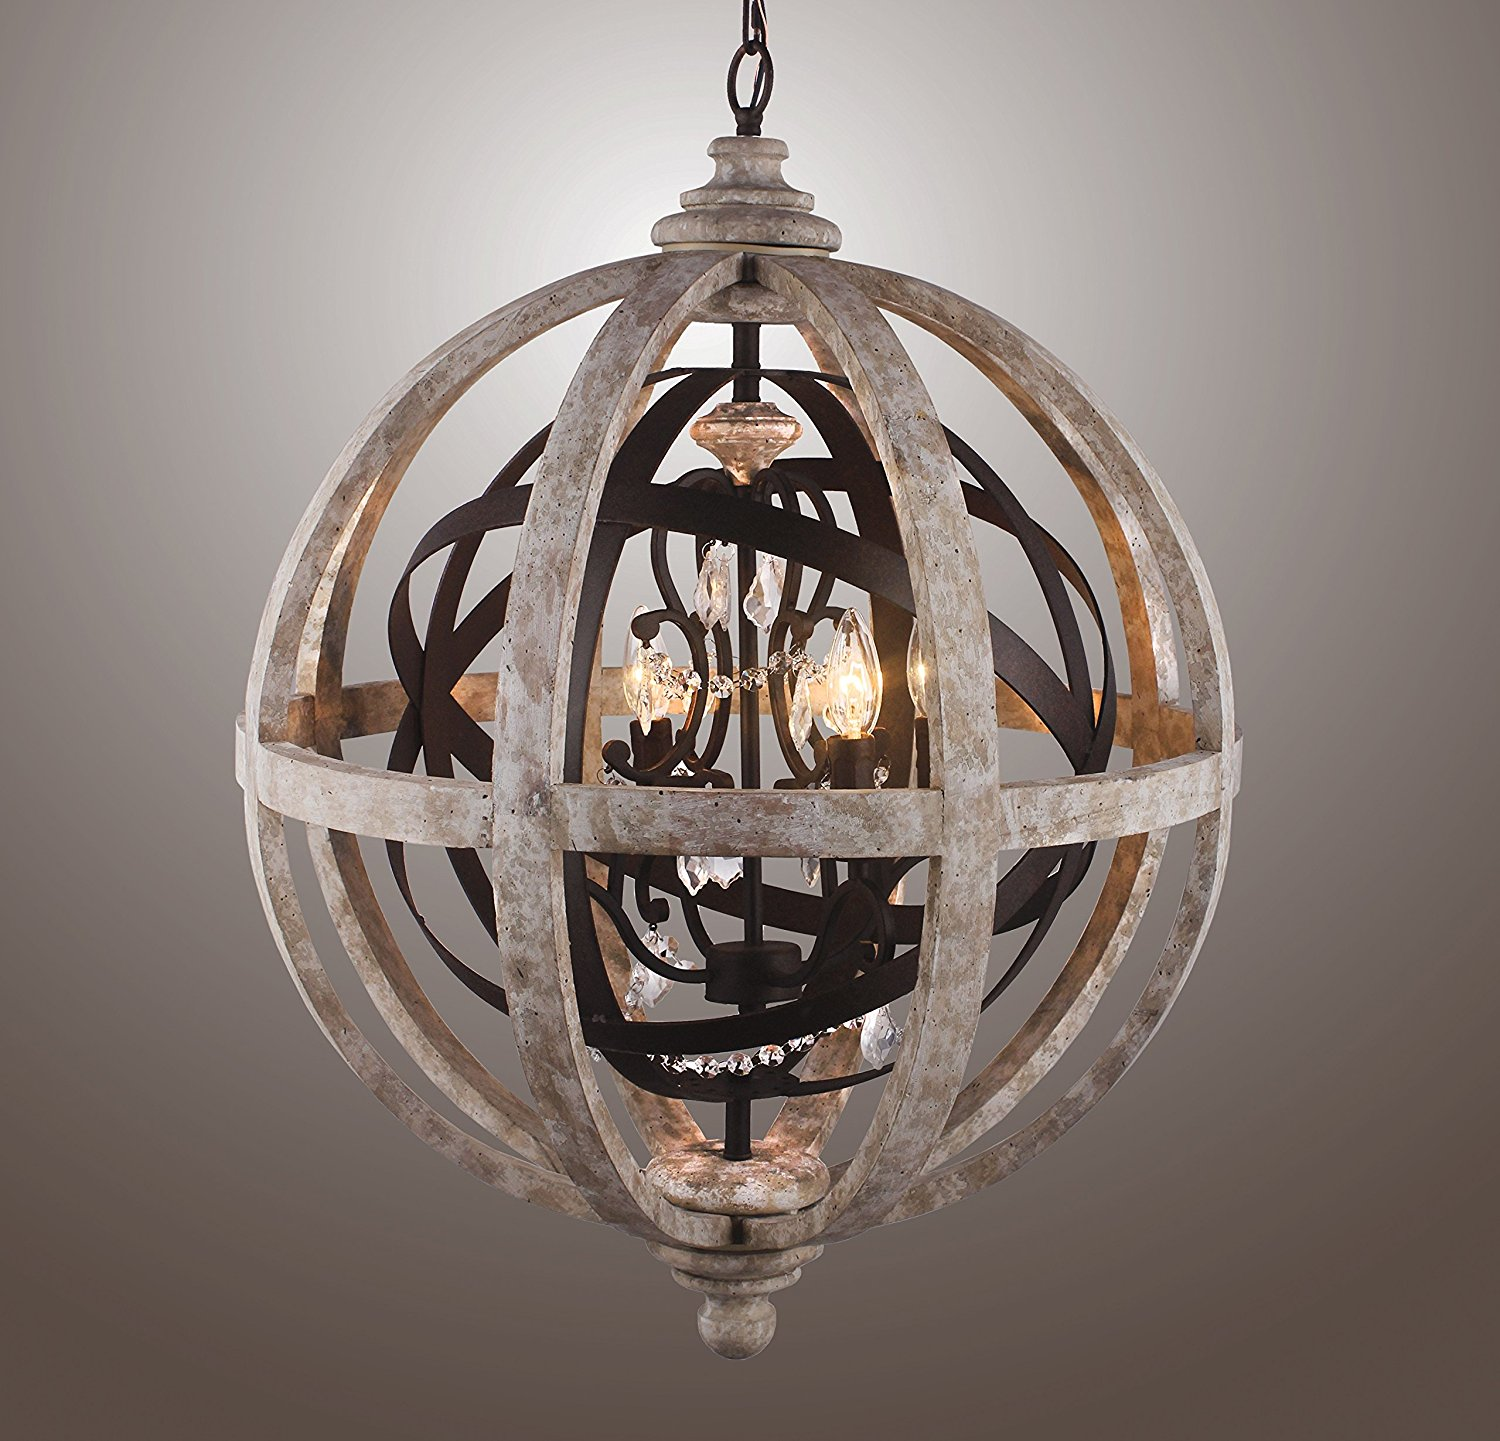 "24"" Rustic Vintage French Country Wood Metal Orbed Globe Chandelier Pendant (4 Light Heads) Rustic Iron"